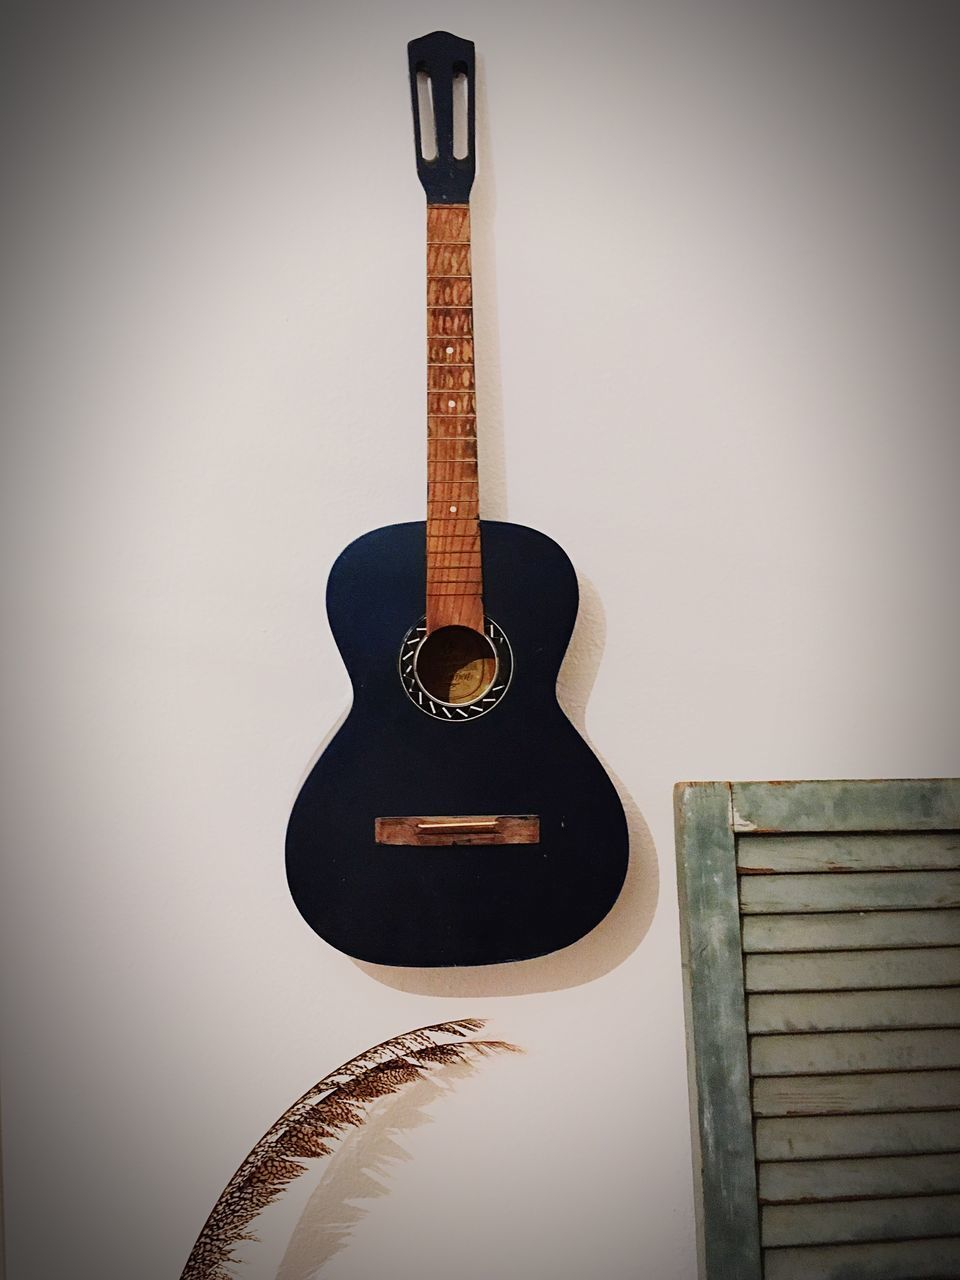 wall - building feature, guitar, music, indoors, no people, musical instrument, vignette, electric guitar, musical instrument string, close-up, day